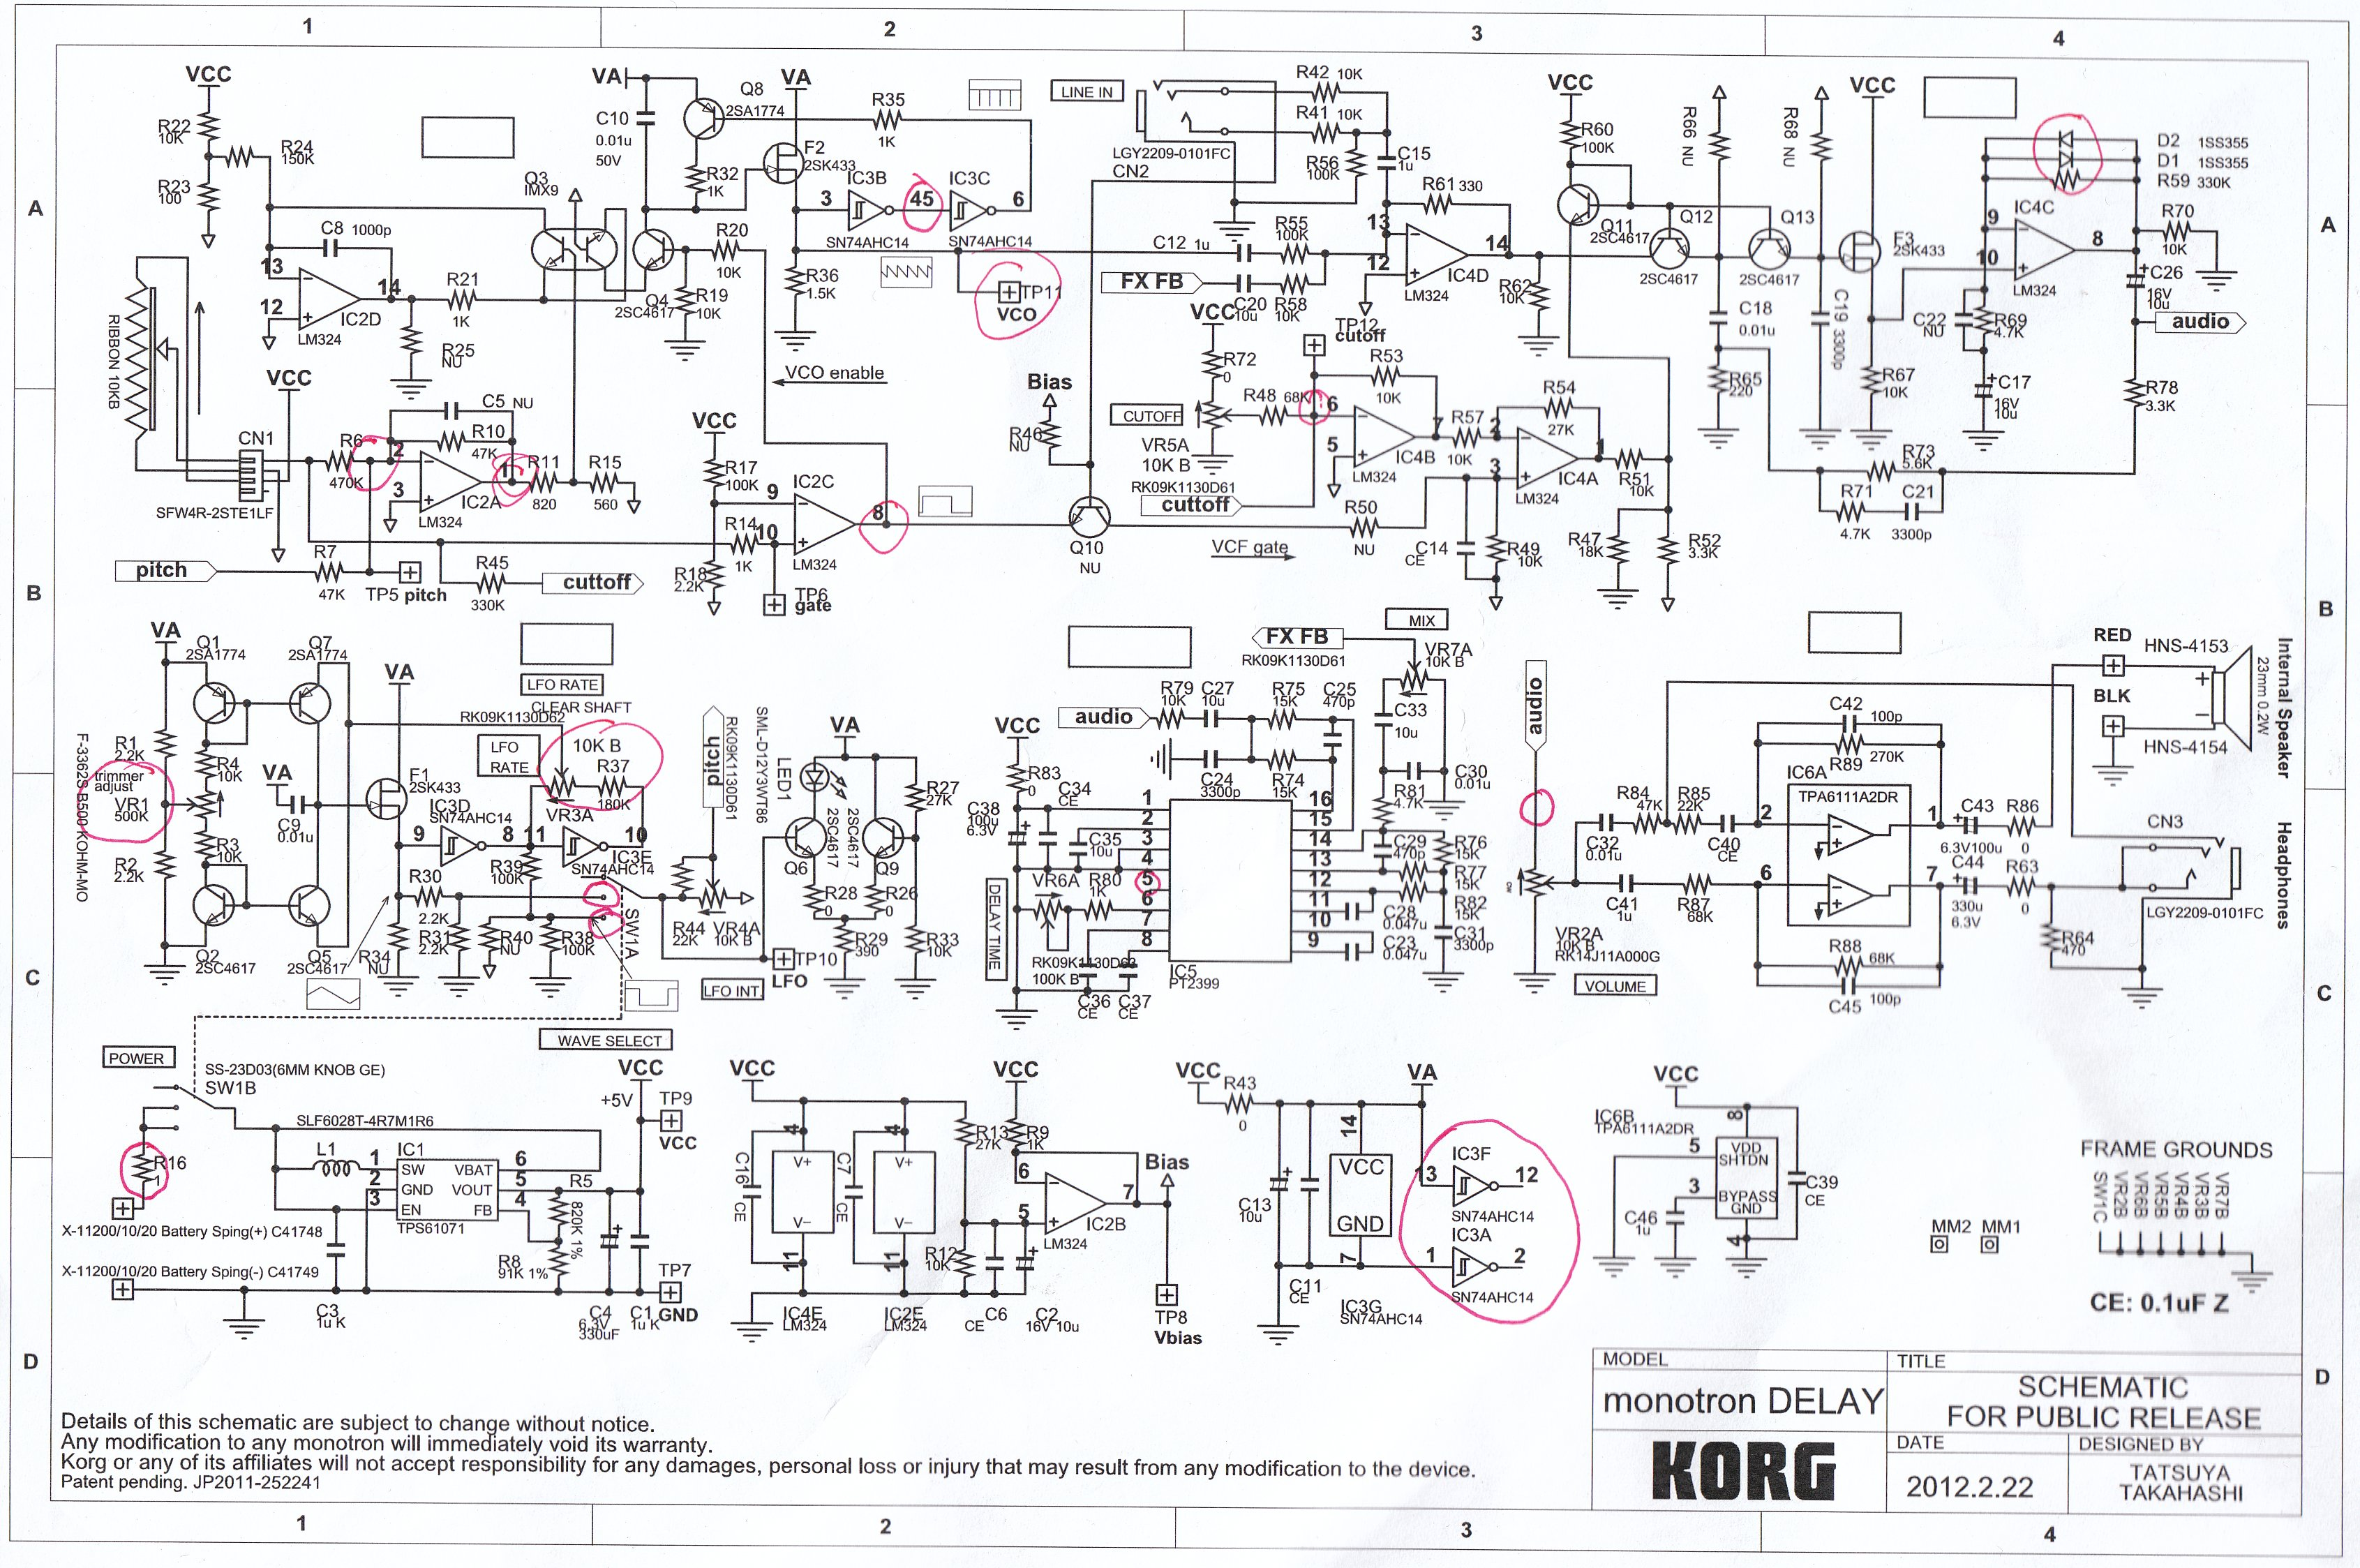 korg monotron delay 100 wet mod gearslutz pro audio community rh gearslutz com Basic Electrical Schematic Diagrams Basic Electrical Wiring Diagrams